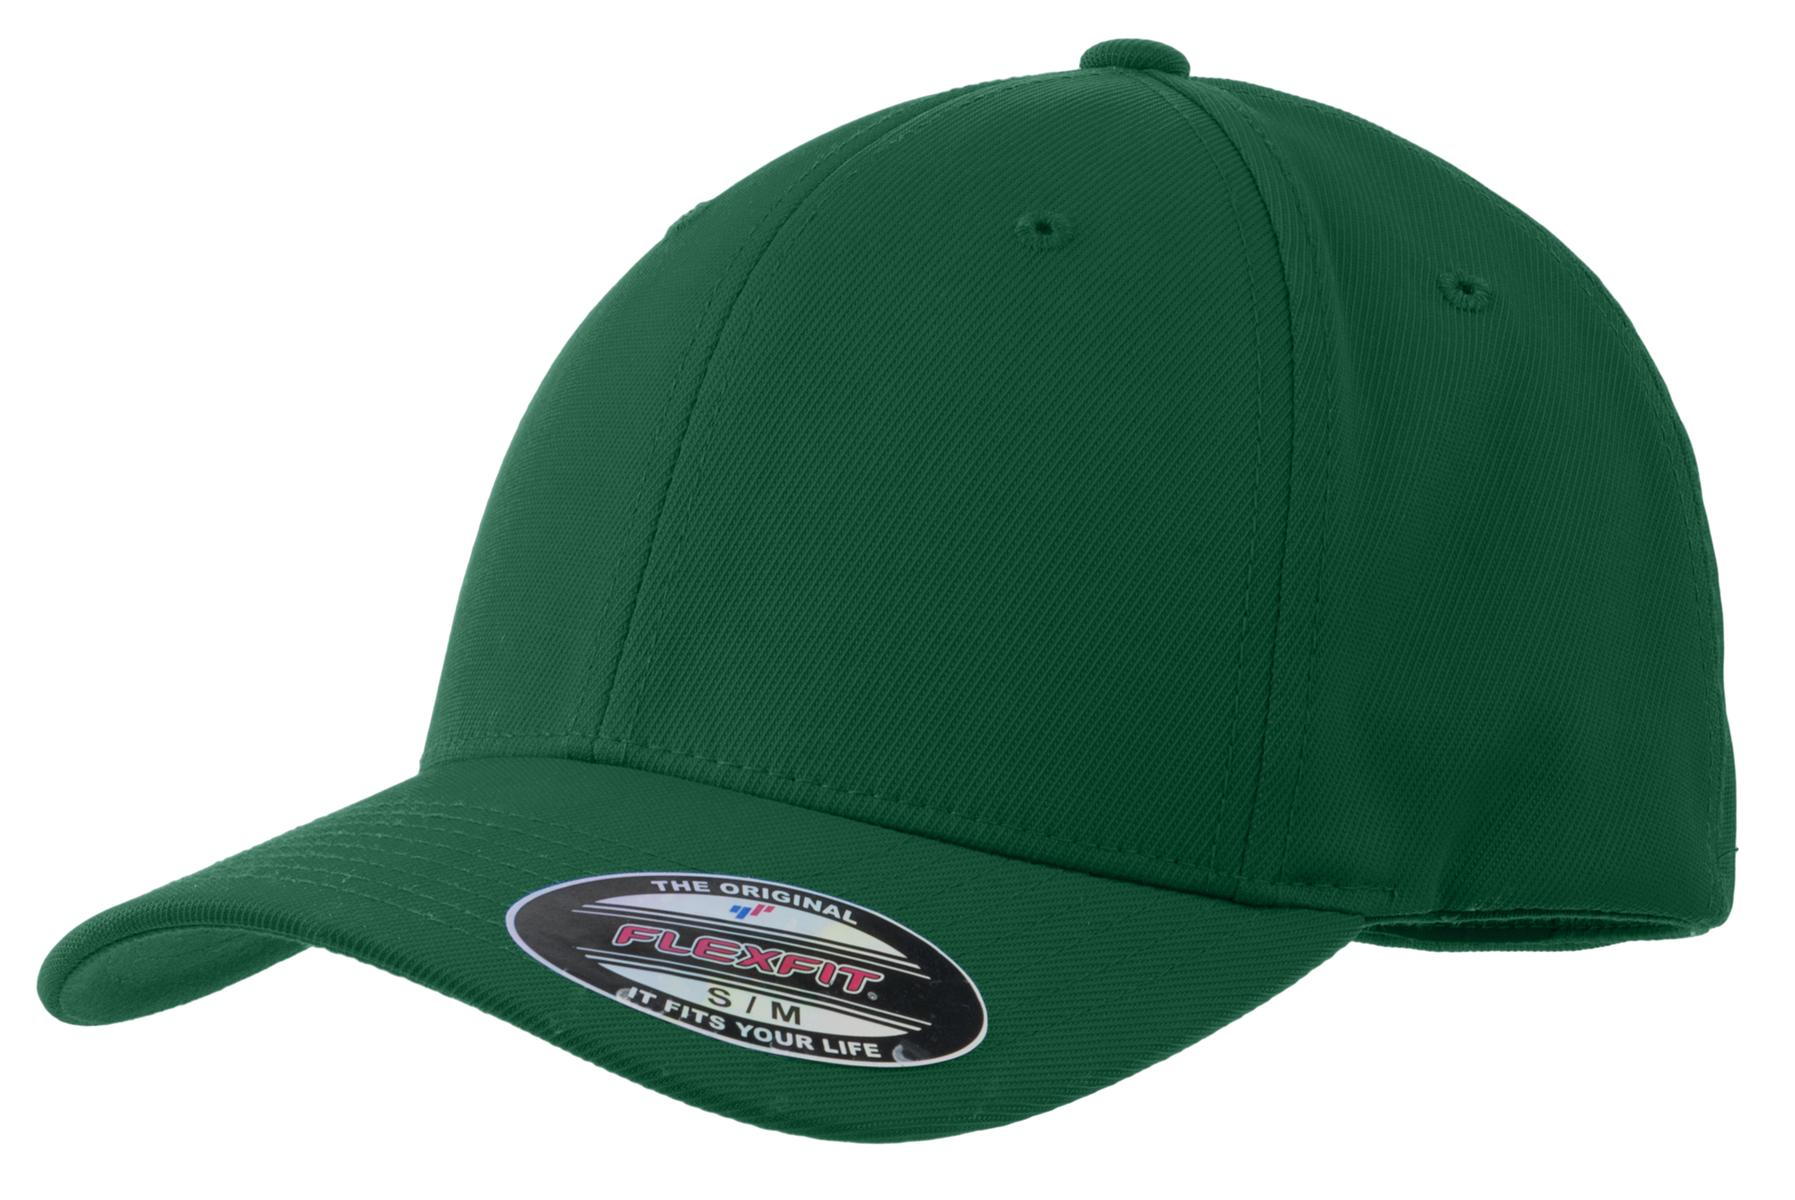 Sport-Tek ®  Flexfit ®  Performance Solid Cap. STC17 - Forest Green